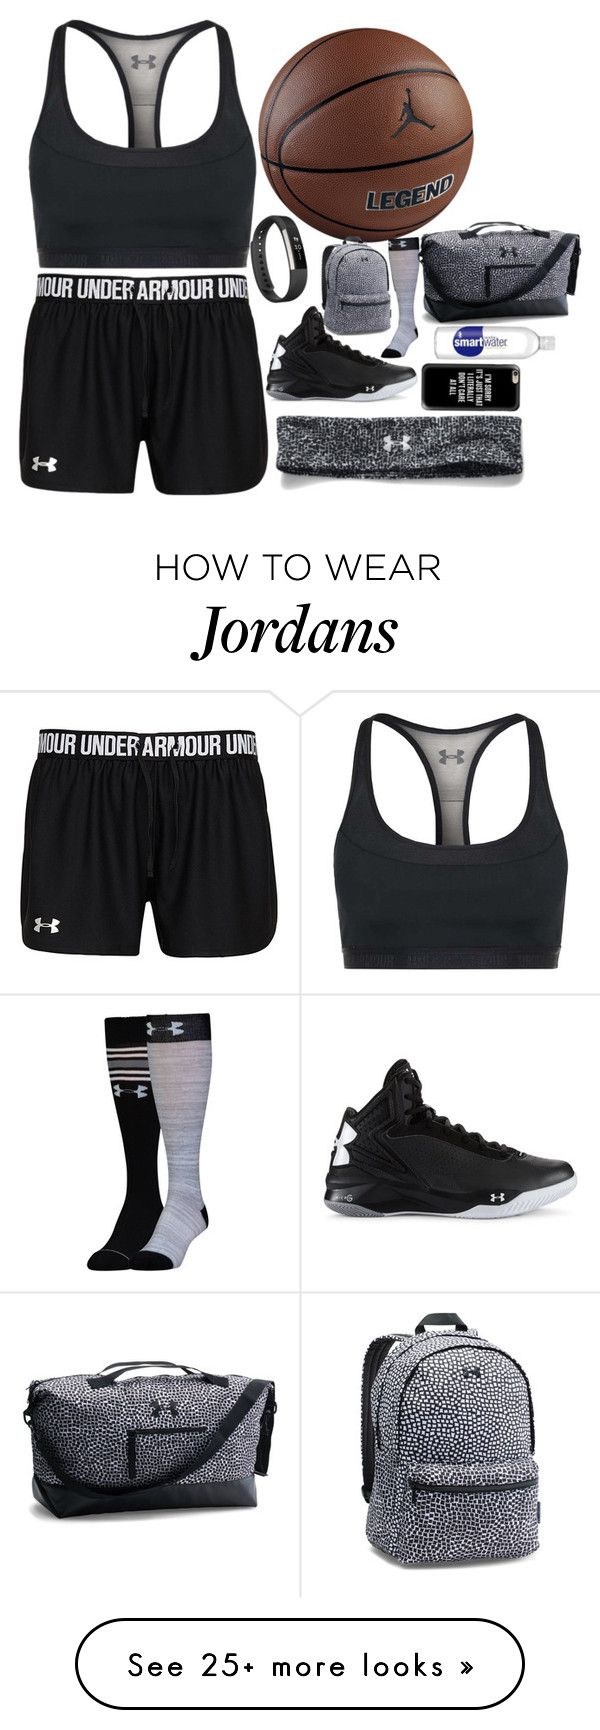 Training Because I Can by jadeandsonic on Polyvore featuring NIKE, Under Armour, Fitbit, Casetify and basketball